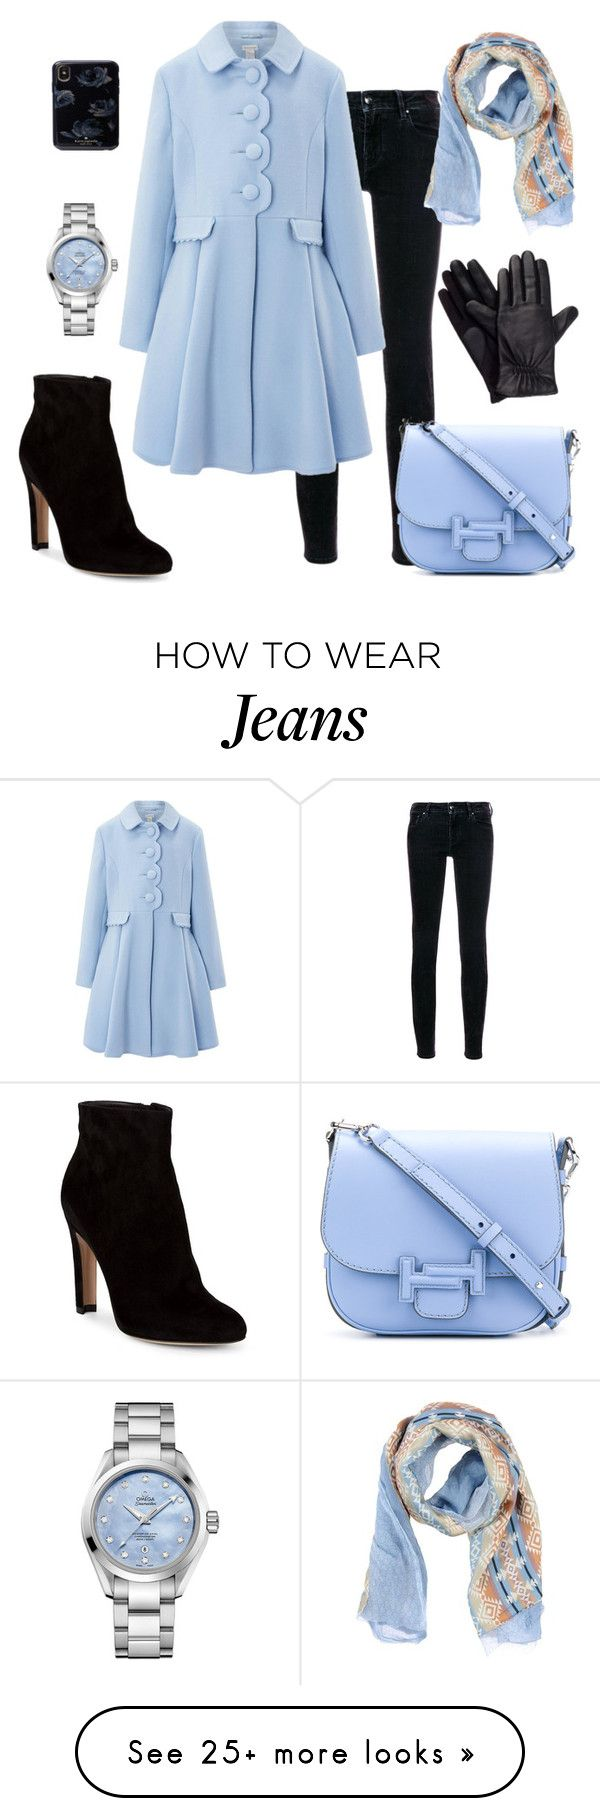 """""""Untitled #158"""" by asner-bond on Polyvore featuring Jacob Cohёn, Monsoon, Gianvito Rossi, Daniele Alessandrini, Tod's, Isotoner and OMEGA"""